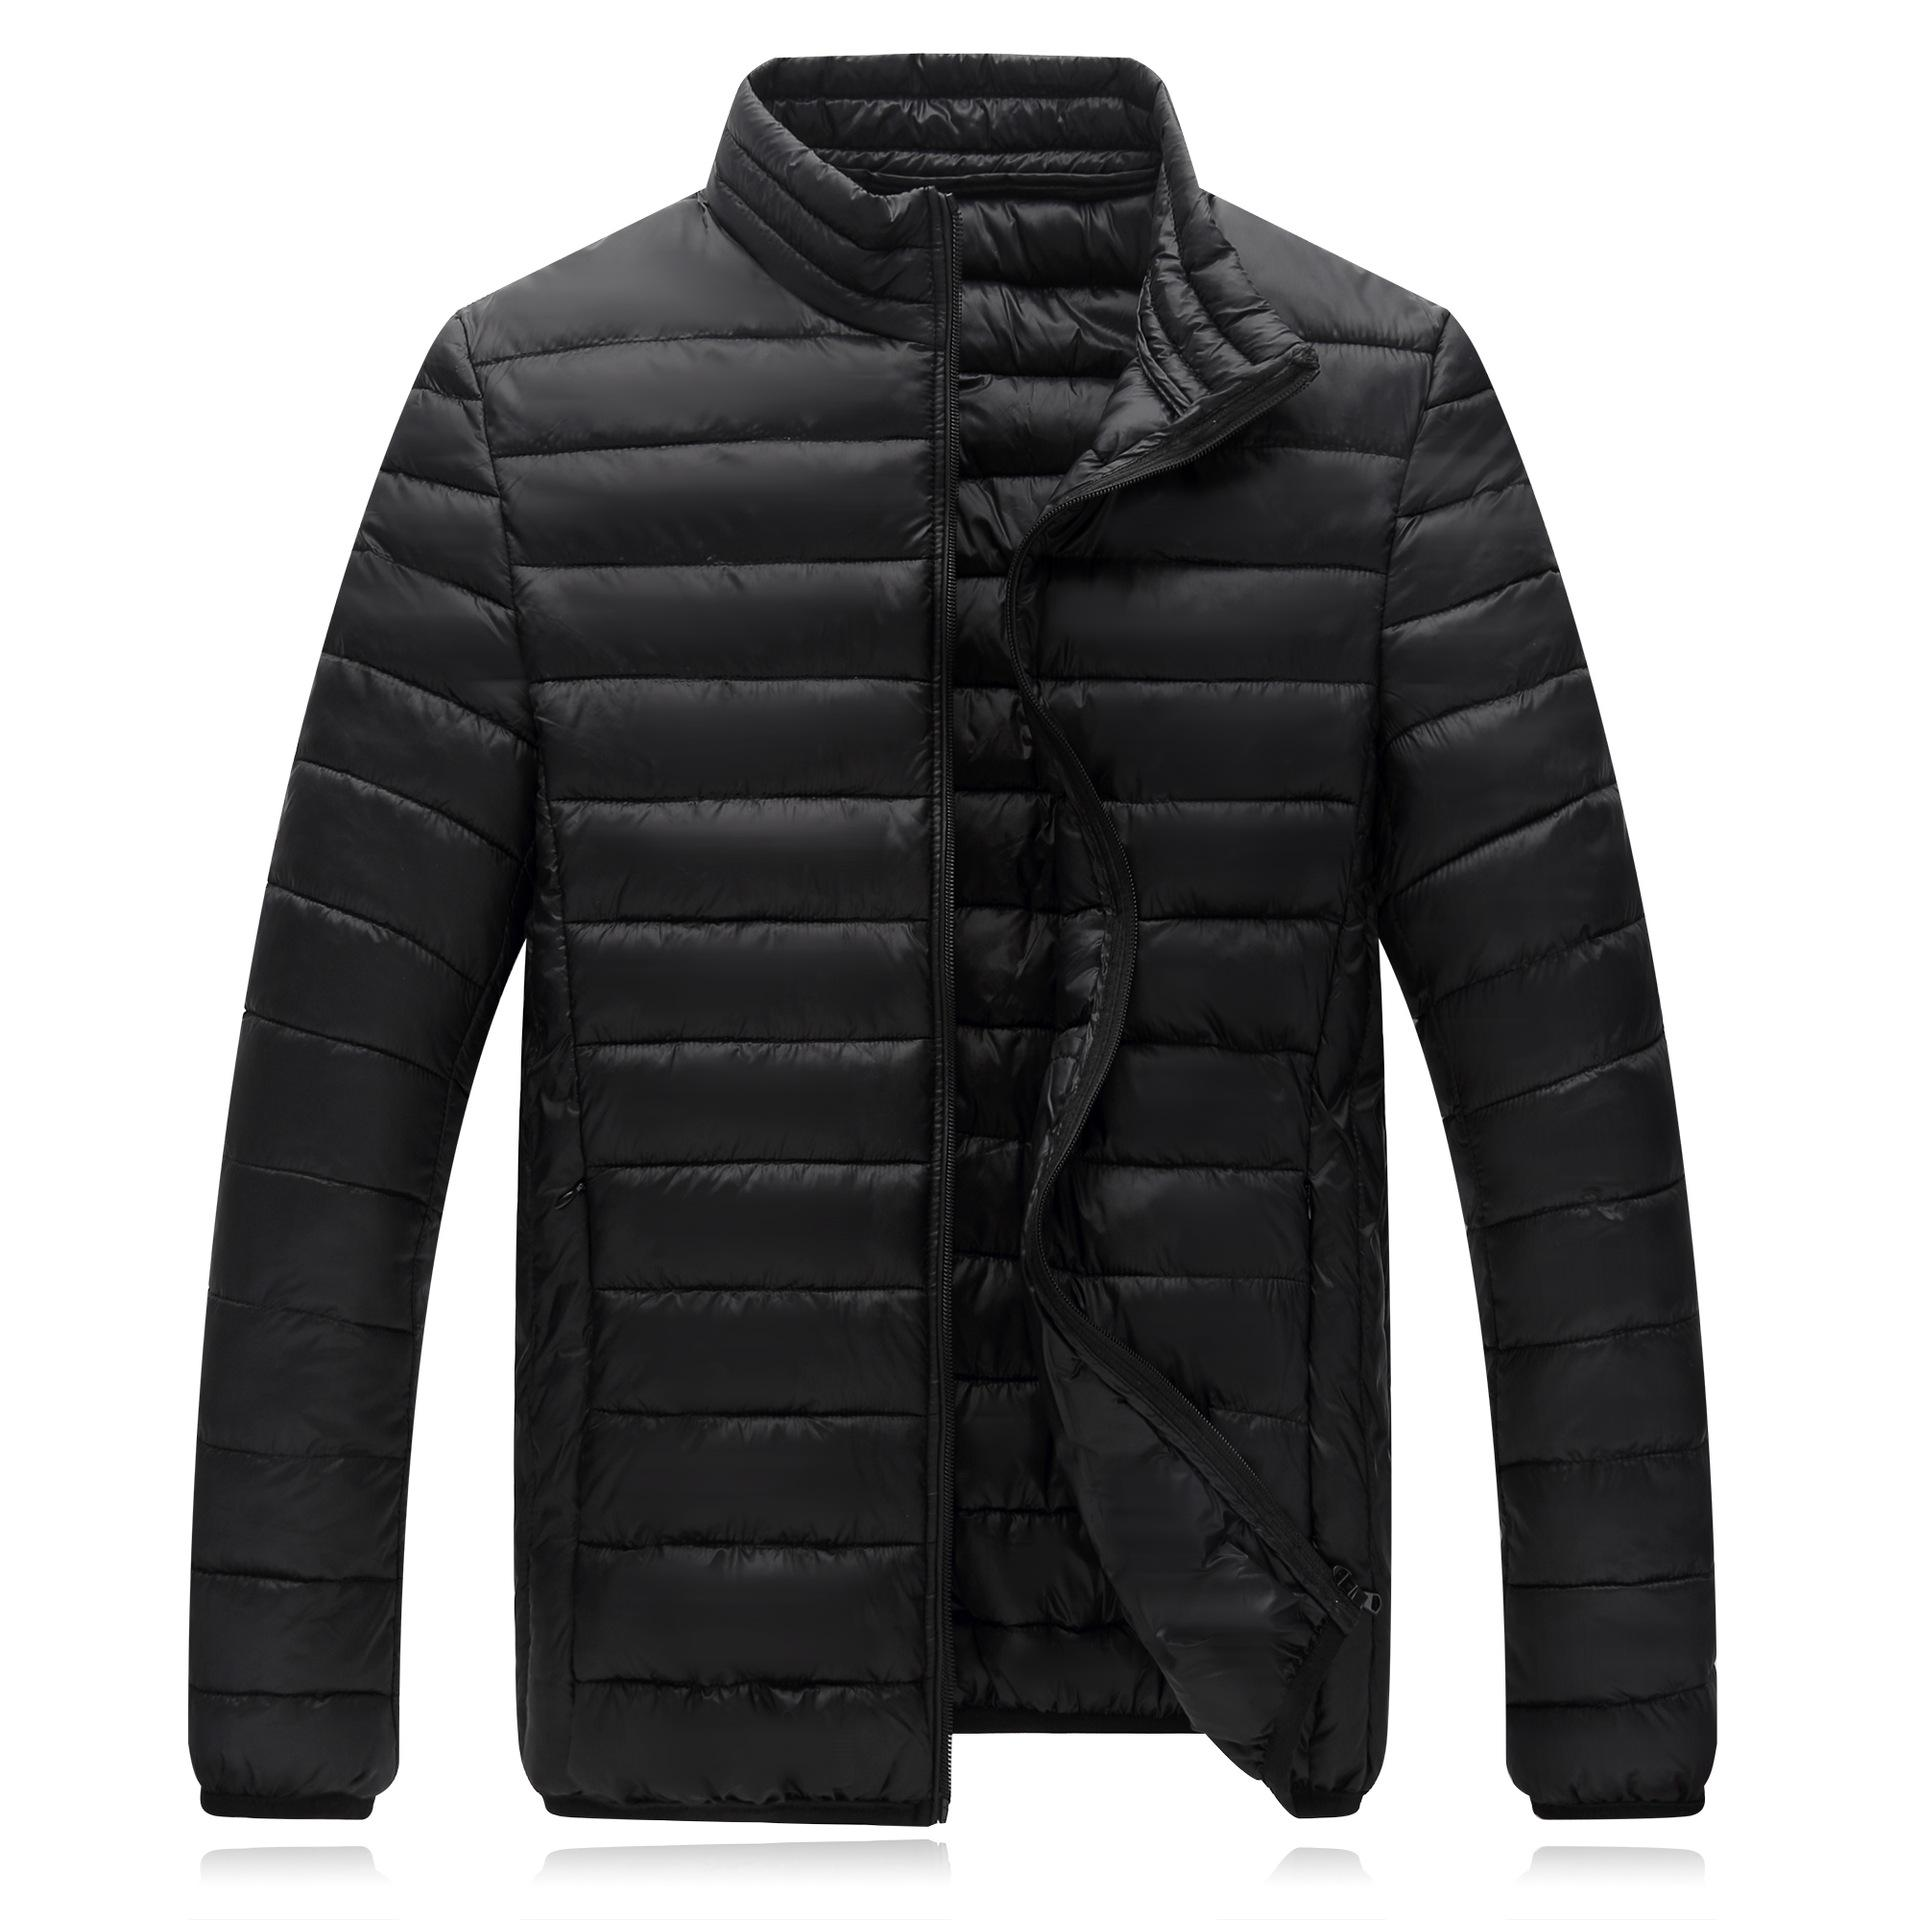 0dfa344ea9aa New Style Light Warm down Jacket Cotton-padded Clothes Men Stand Collar  Large Size Youth